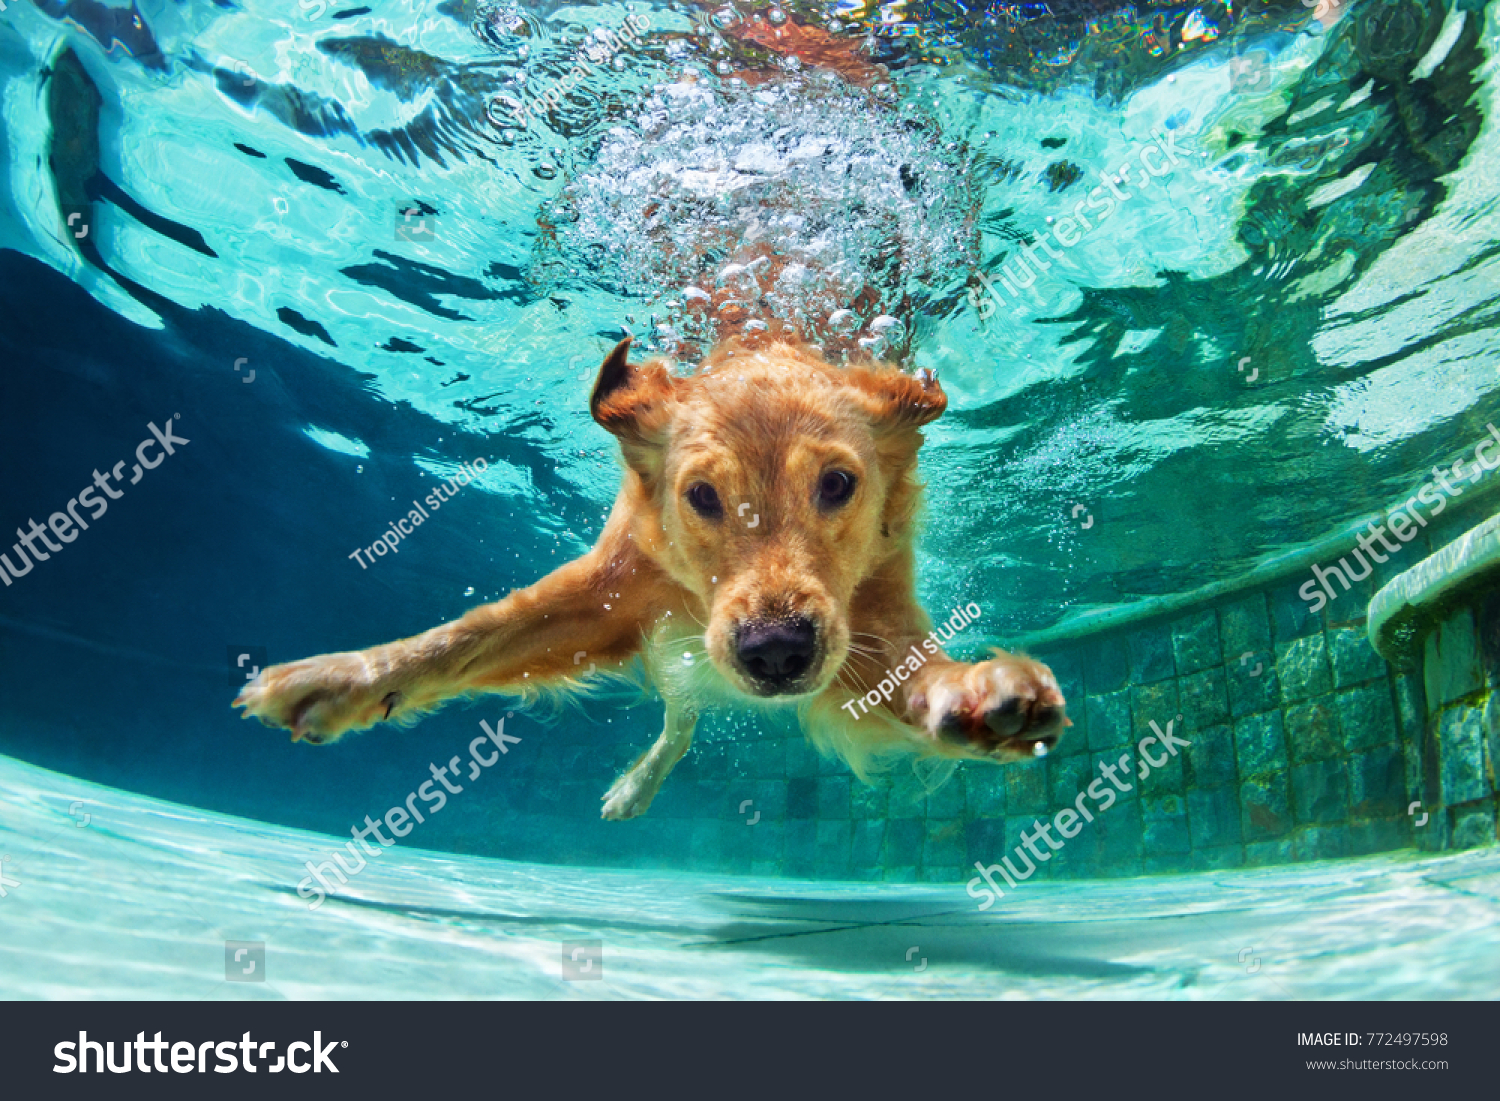 Underwater funny photo of golden labrador retriever puppy in swimming pool play with fun - jumping, diving deep down. Actions, training games with family pets and popular dog breeds on summer vacation #772497598